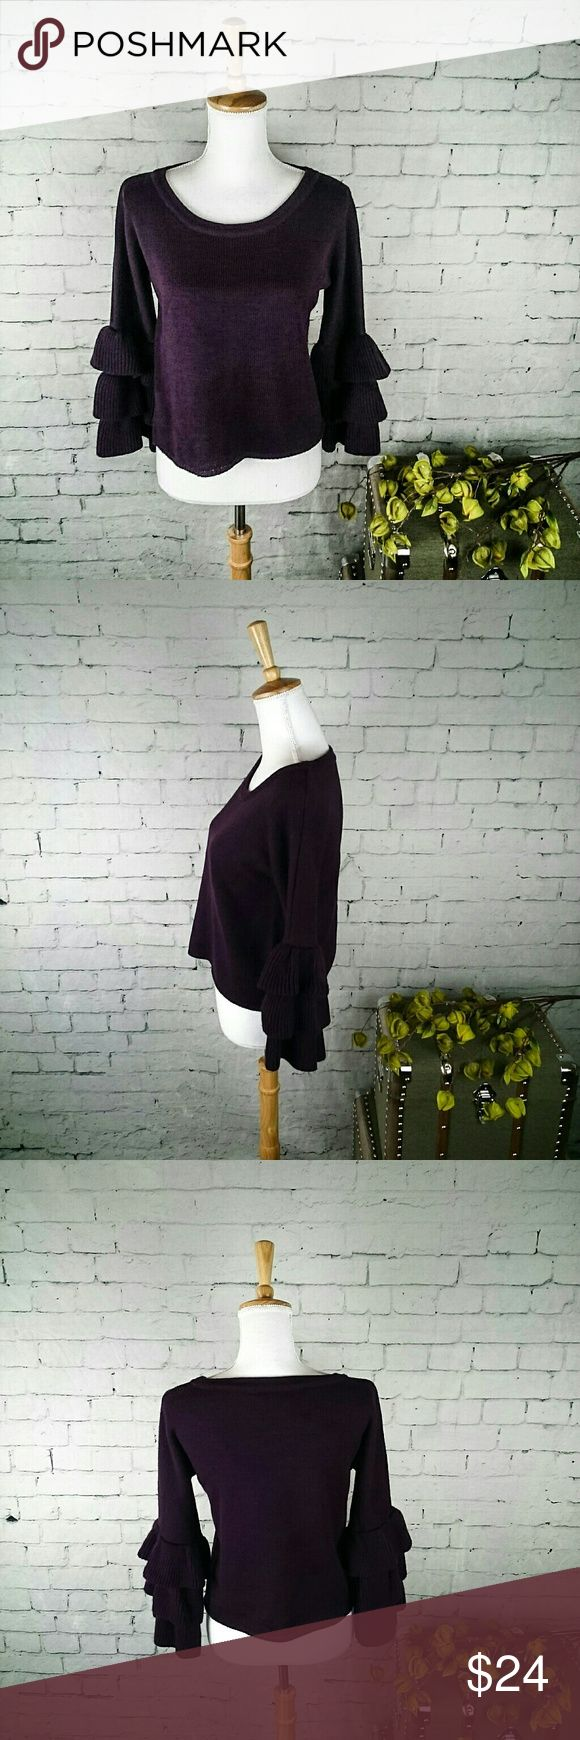 """NWT Moon & Madison sweater w/ ruffled bell sleeves -Brand new Moon and Madison cropped sweater with ruffled bell sleeves  -Pretty plum color  -3/4 sleeves  -Size L  -19.5"""" from armpit to armpit  -20.25"""" from shoulder to hem  #512 All measurements are approximate and are taken when the garment is laying flat.  Thanks for stopping by. Moon and Madison Sweaters Crew & Scoop Necks"""